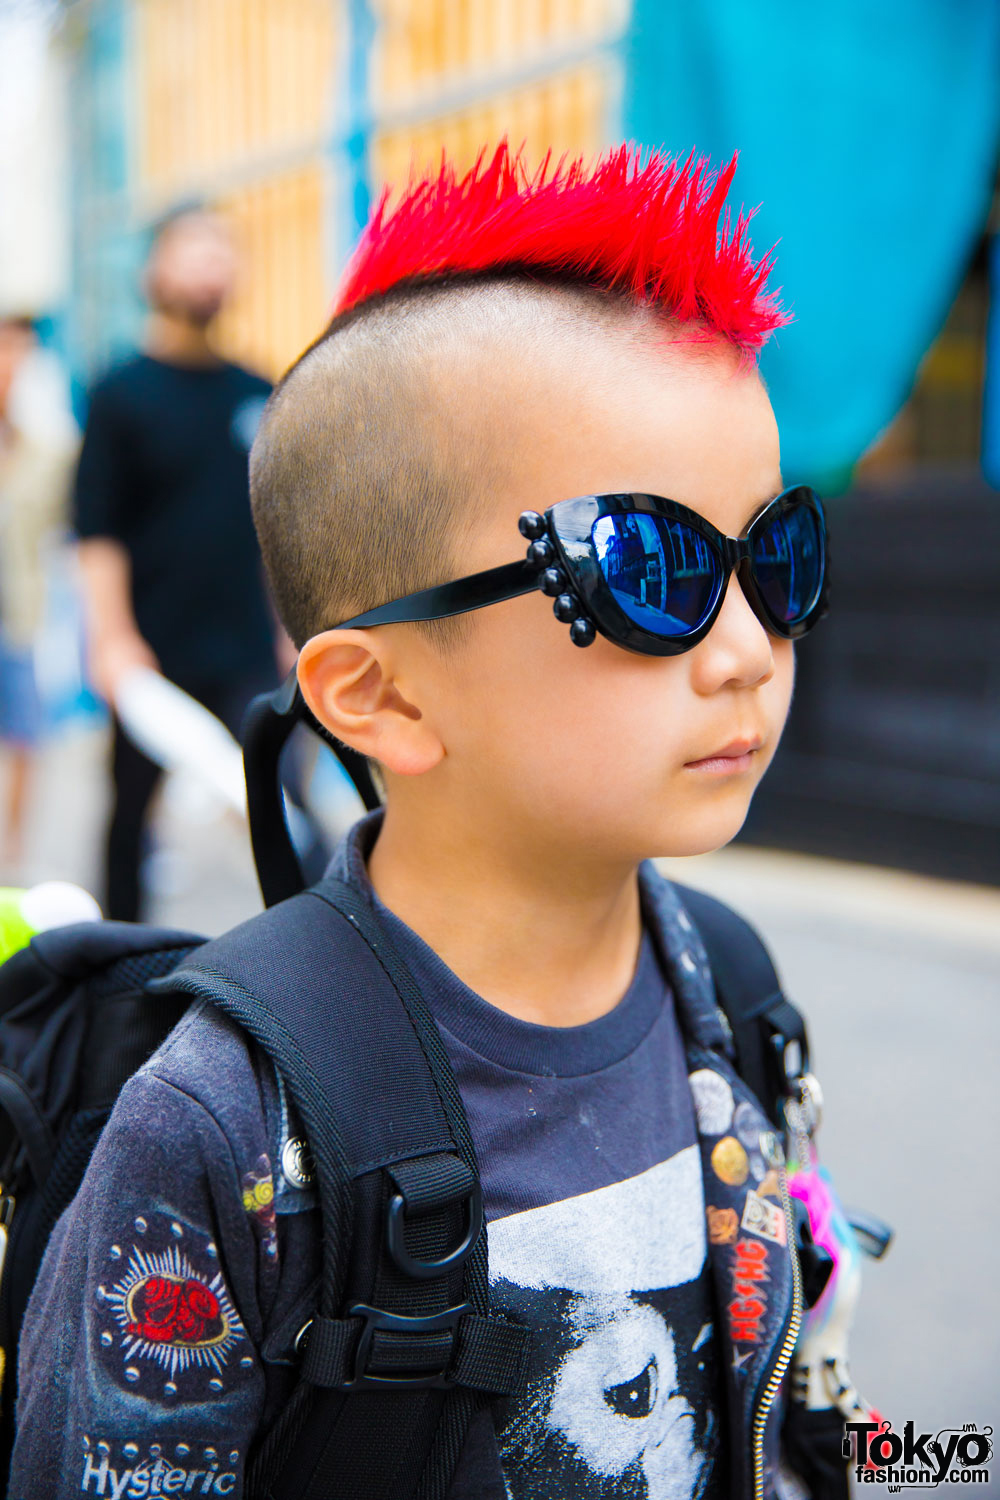 6 Year Old Harajuku Kid W Mohawk In Patched Jacket